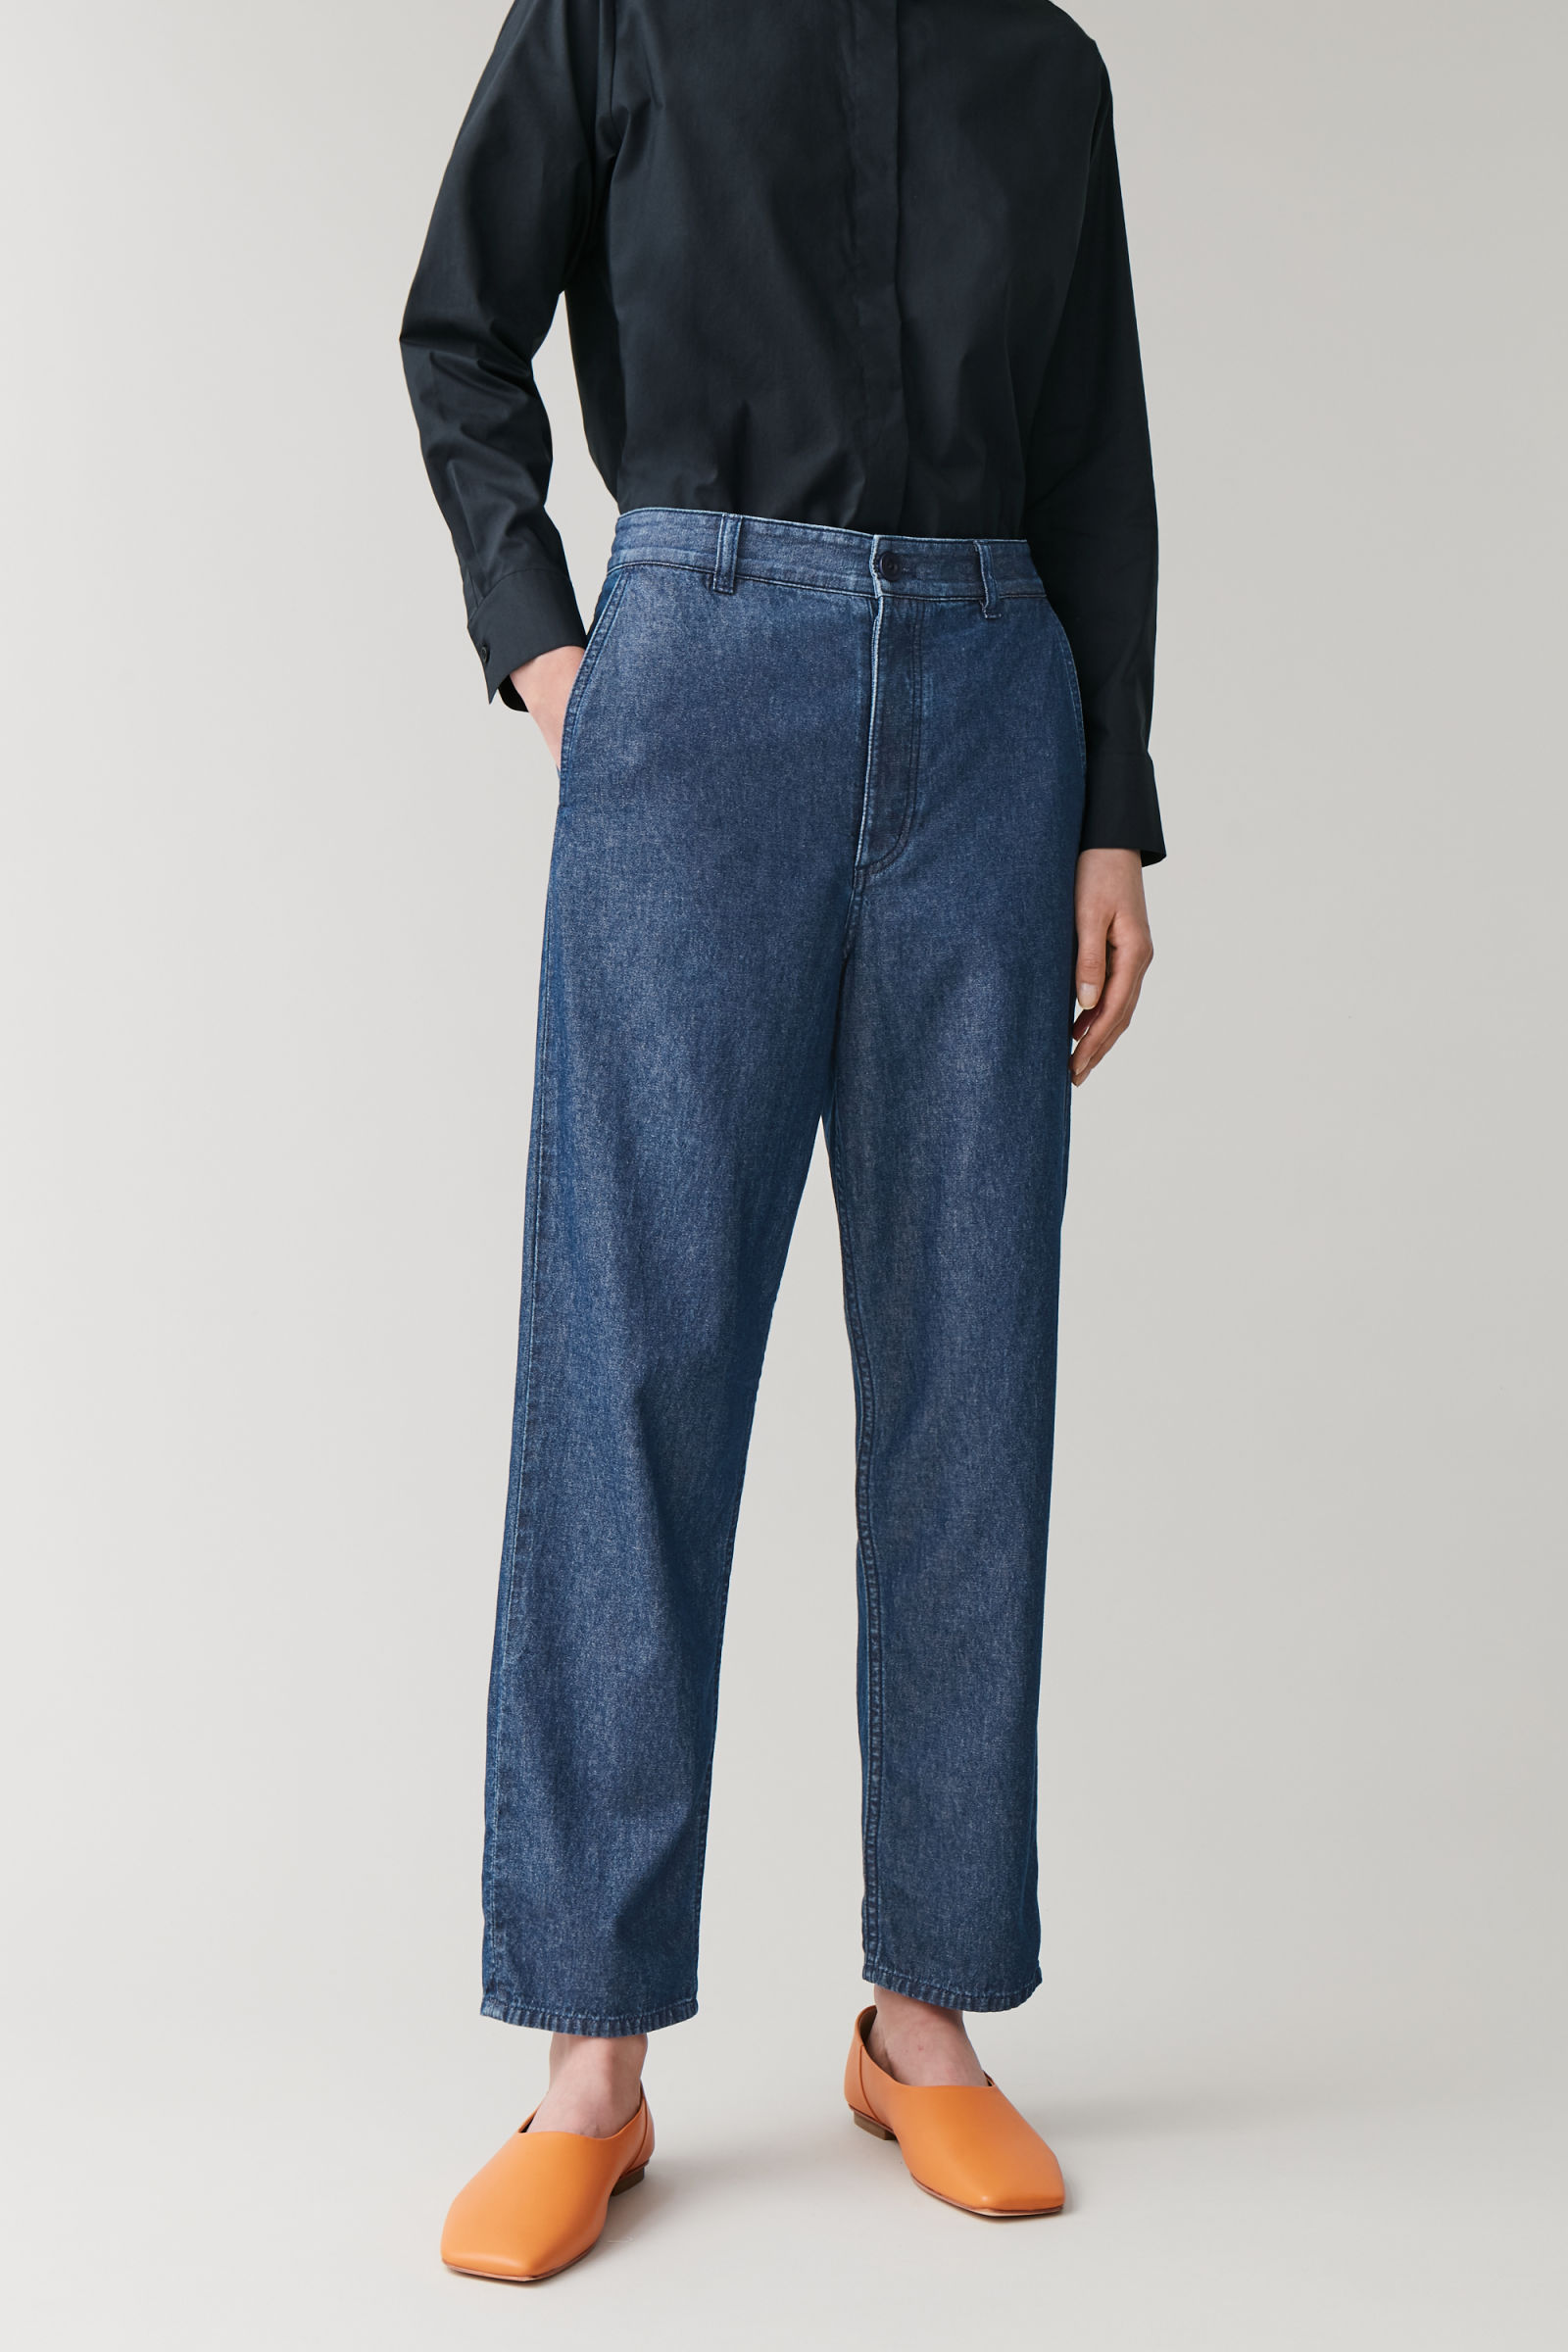 COS DENIM CHINO TROUSERS,Light blue